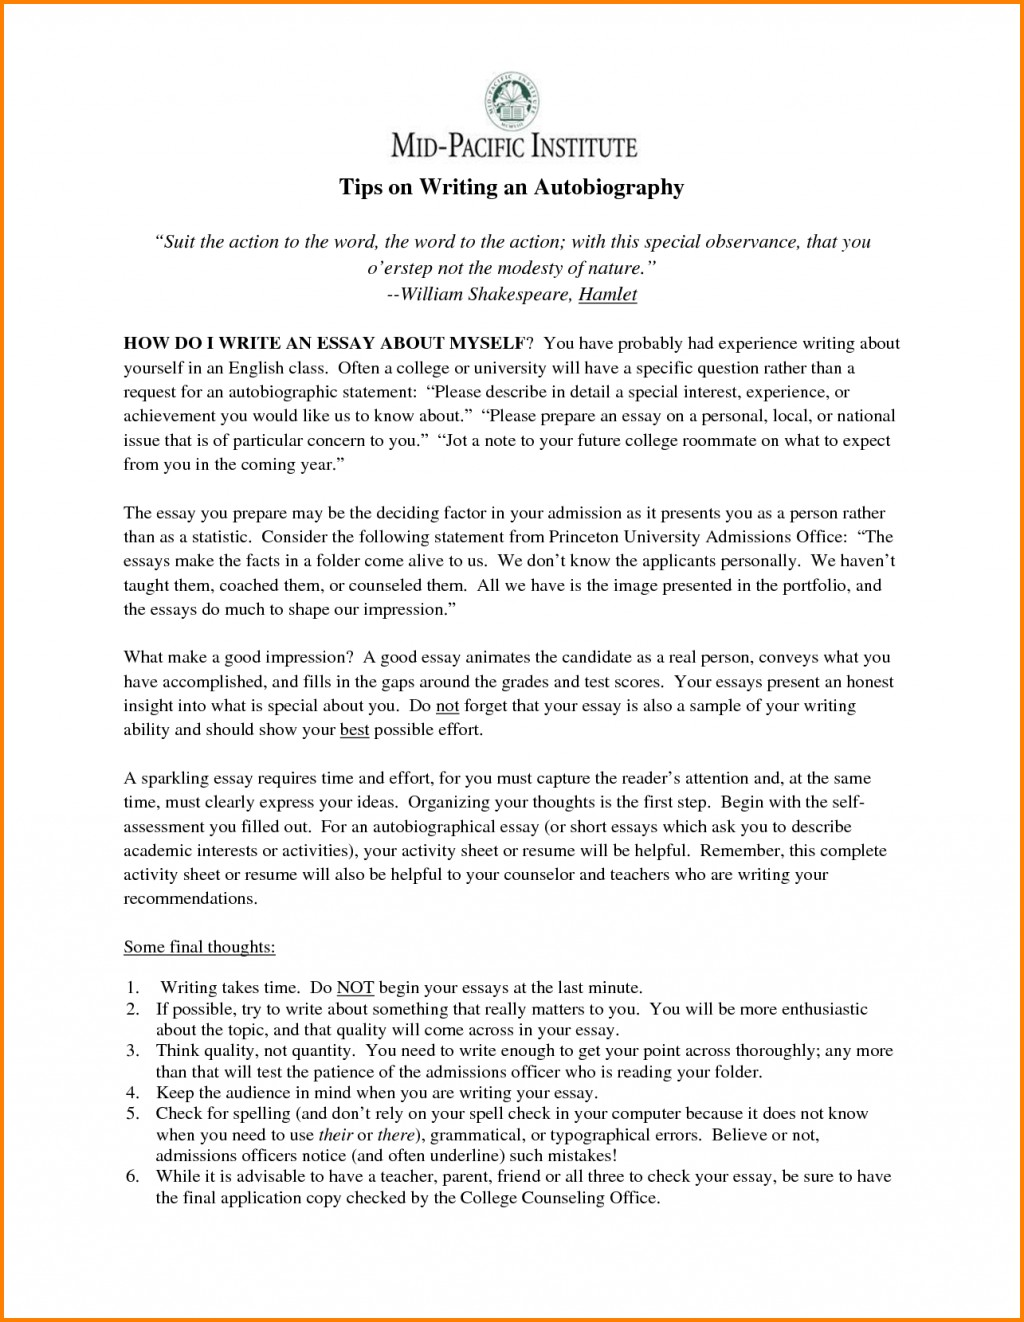 013 Best Solutions Of Tips On Writing Narrative Essay How To Start College Spectacular Write Application Outline Breathtaking An About Yourself Argumentative Step By Pdf Conclusion Paragraph Large